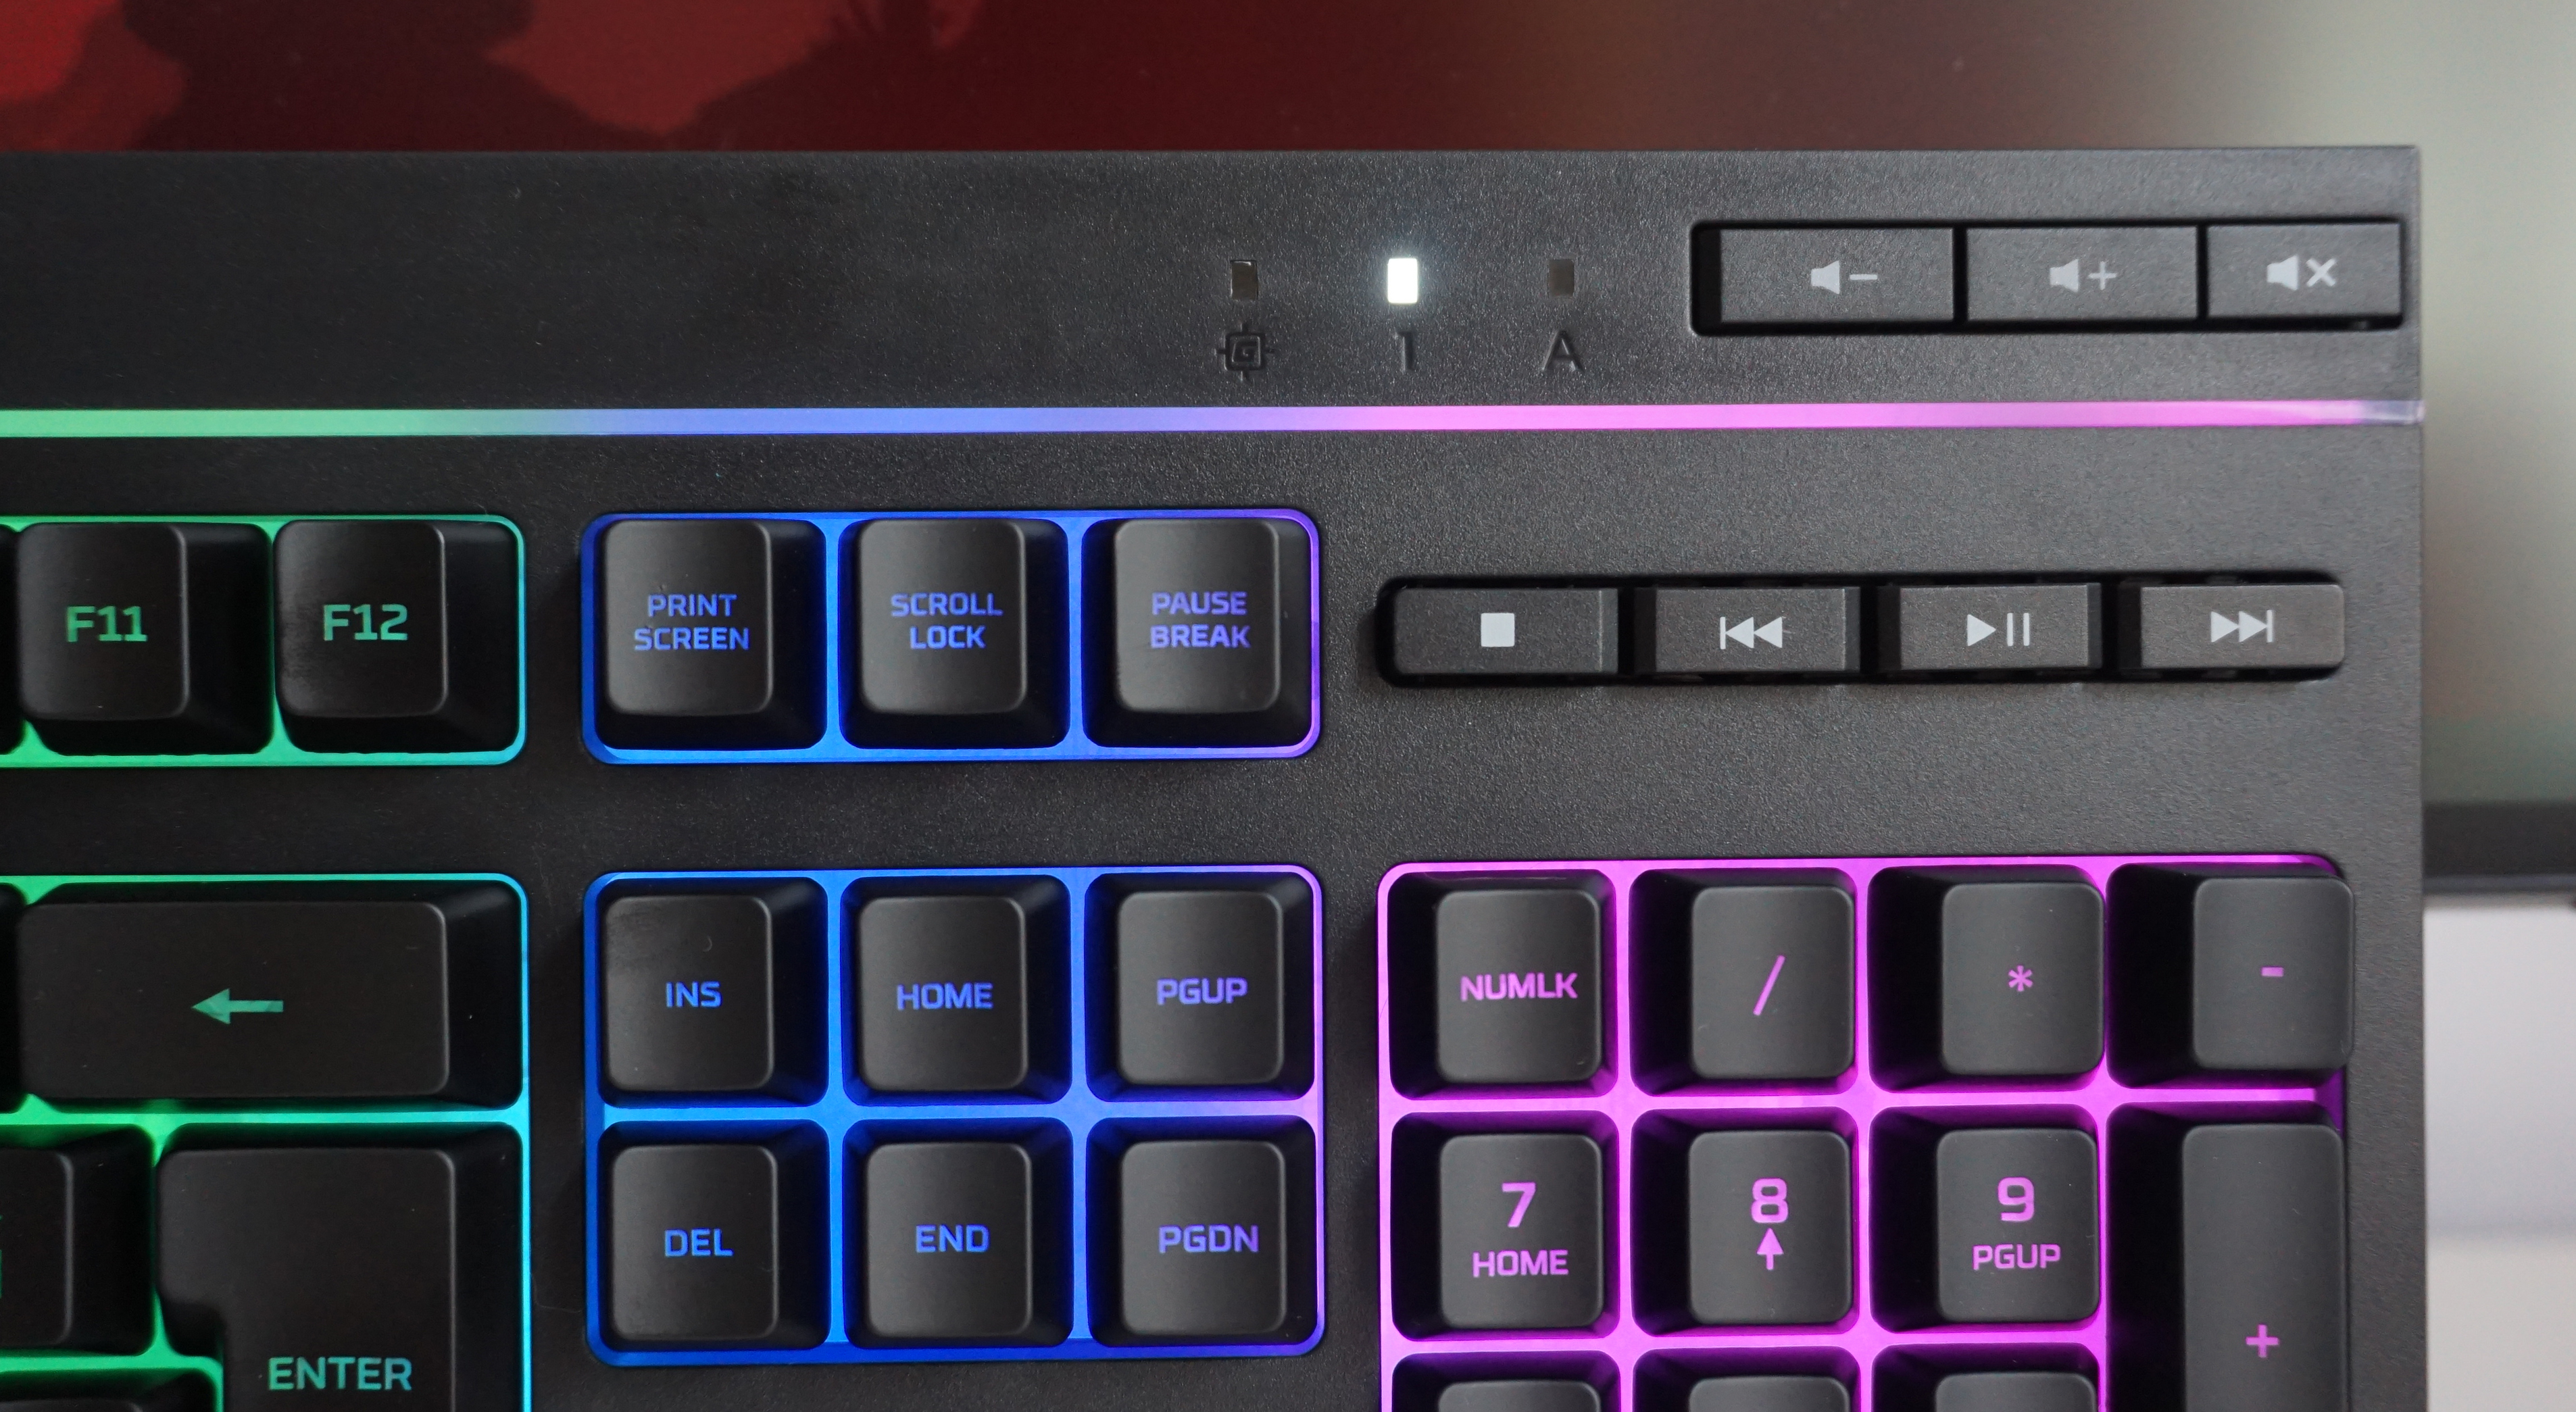 How To Use Media Keys On Keyboard